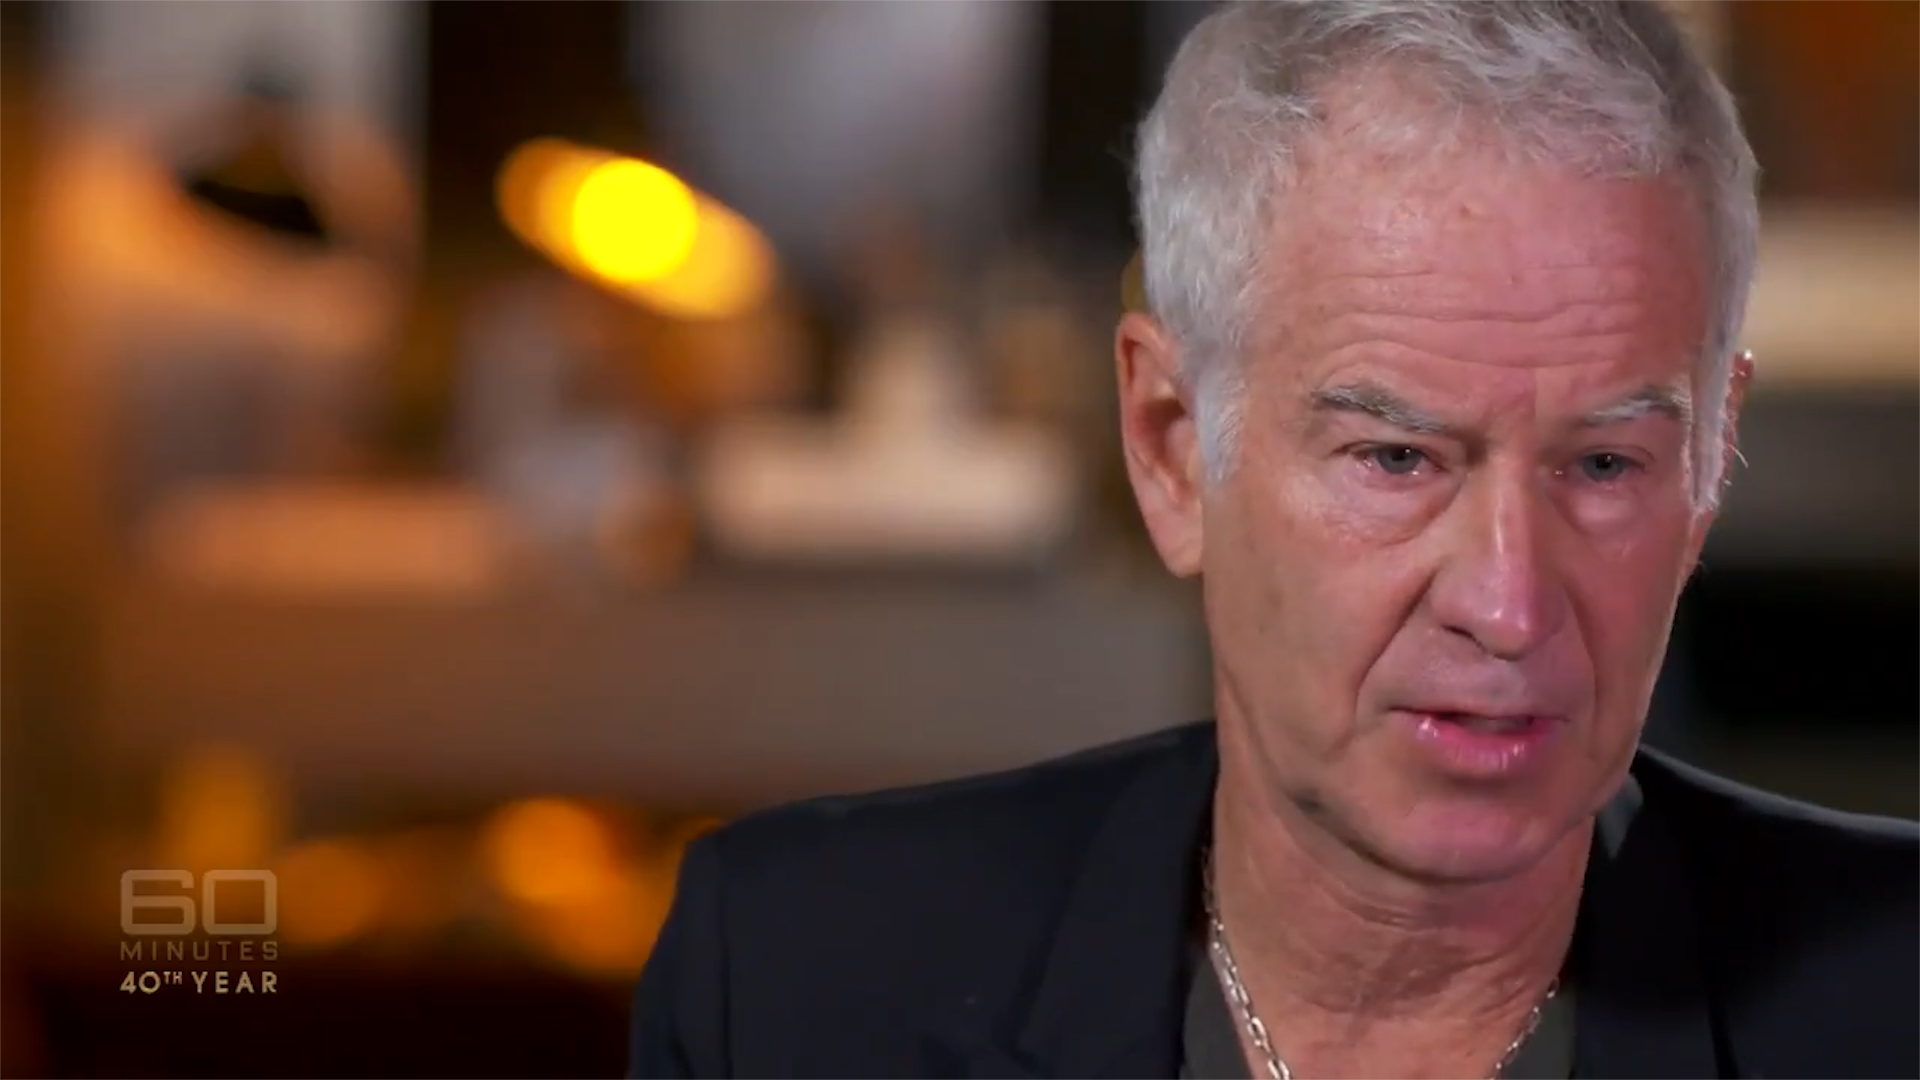 McEnroe answers Serena challenge question